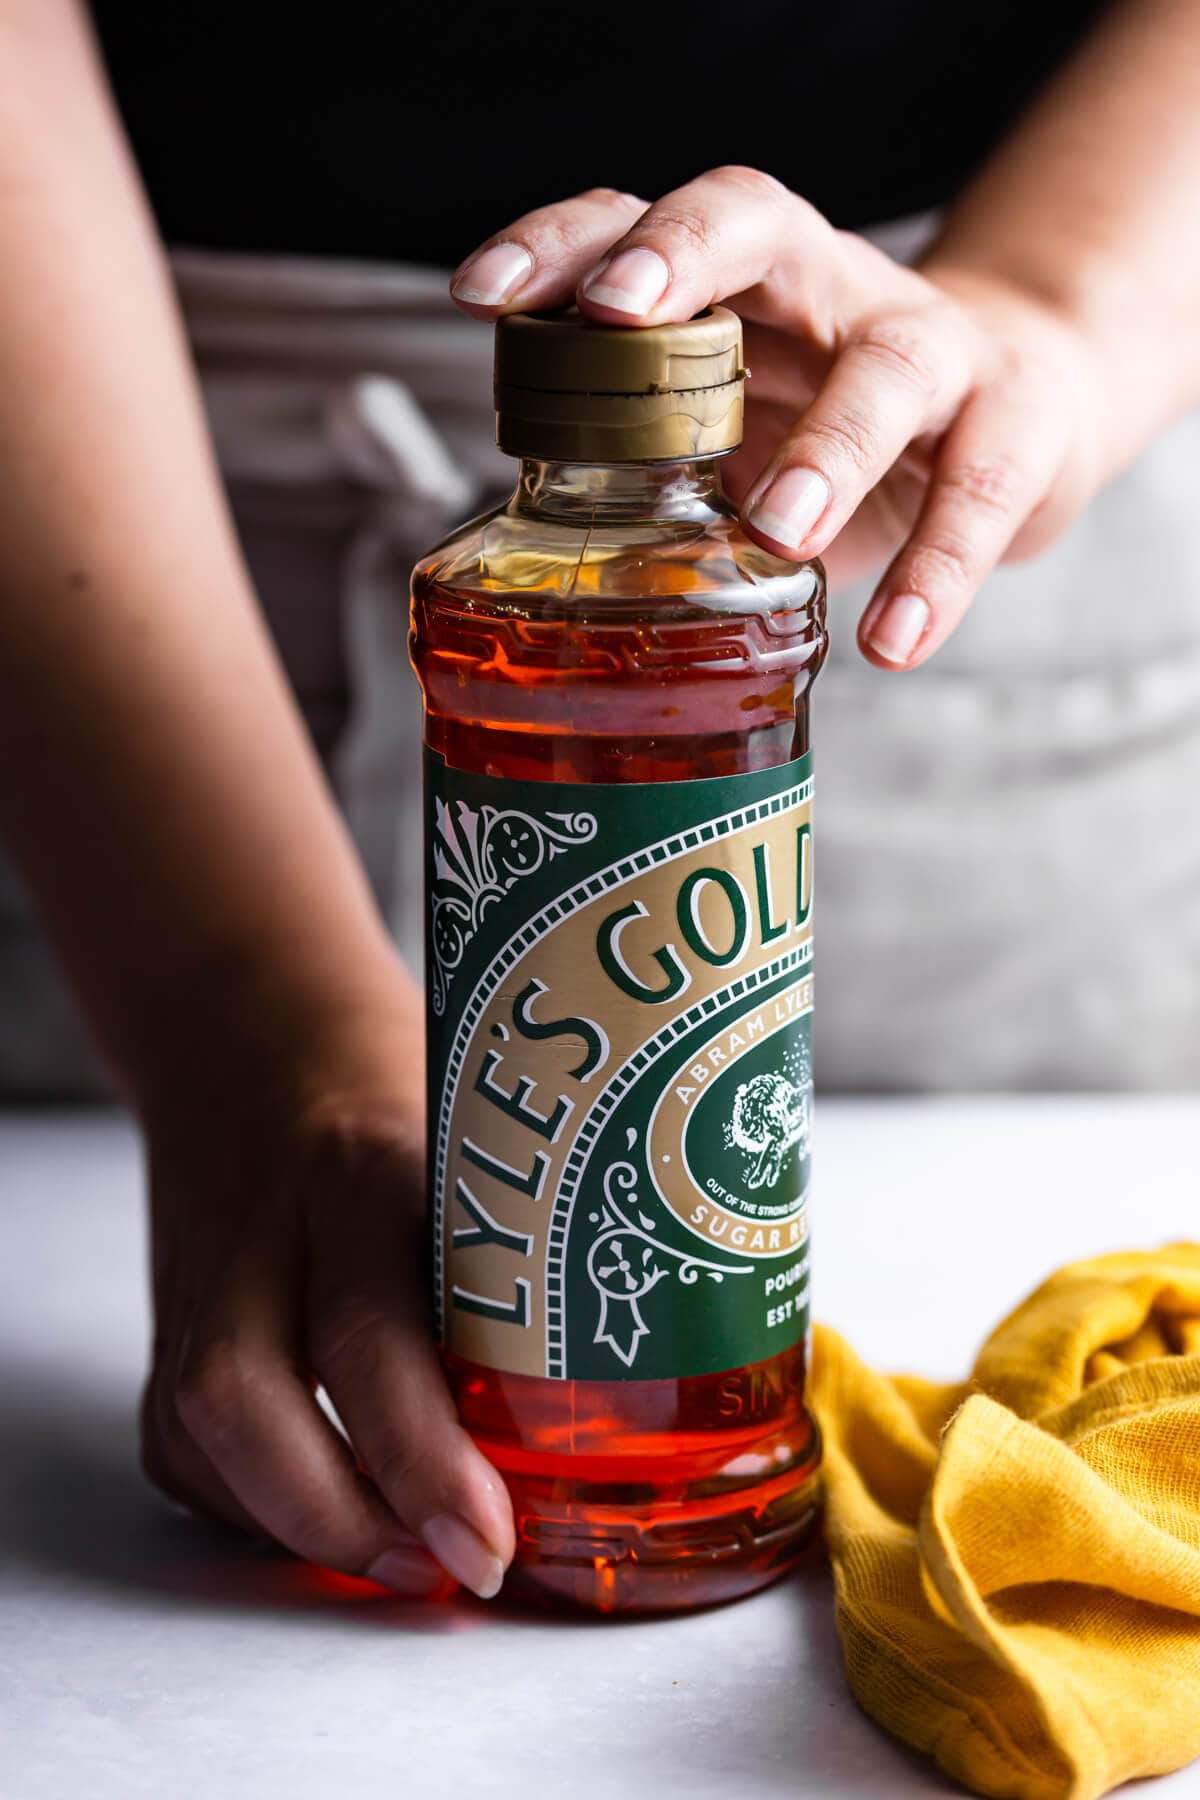 side close up at a person holding a bottle of Lyle's Golden Syrup